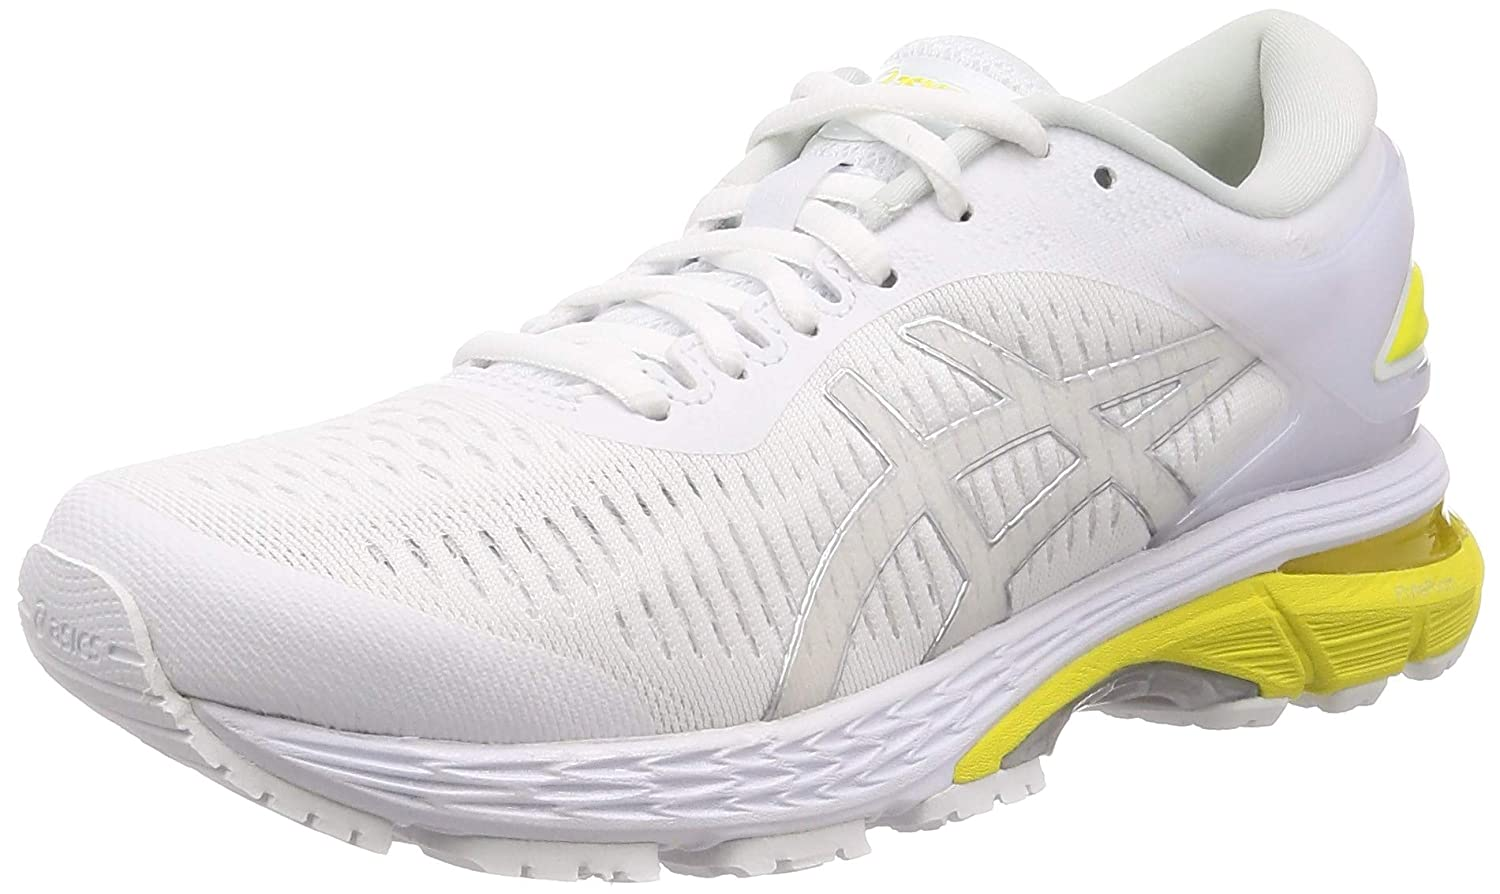 best sneakers lower price with kid Amazon.com: ASICS Women's Gel Kayano 25, White/Lemon Spark ...